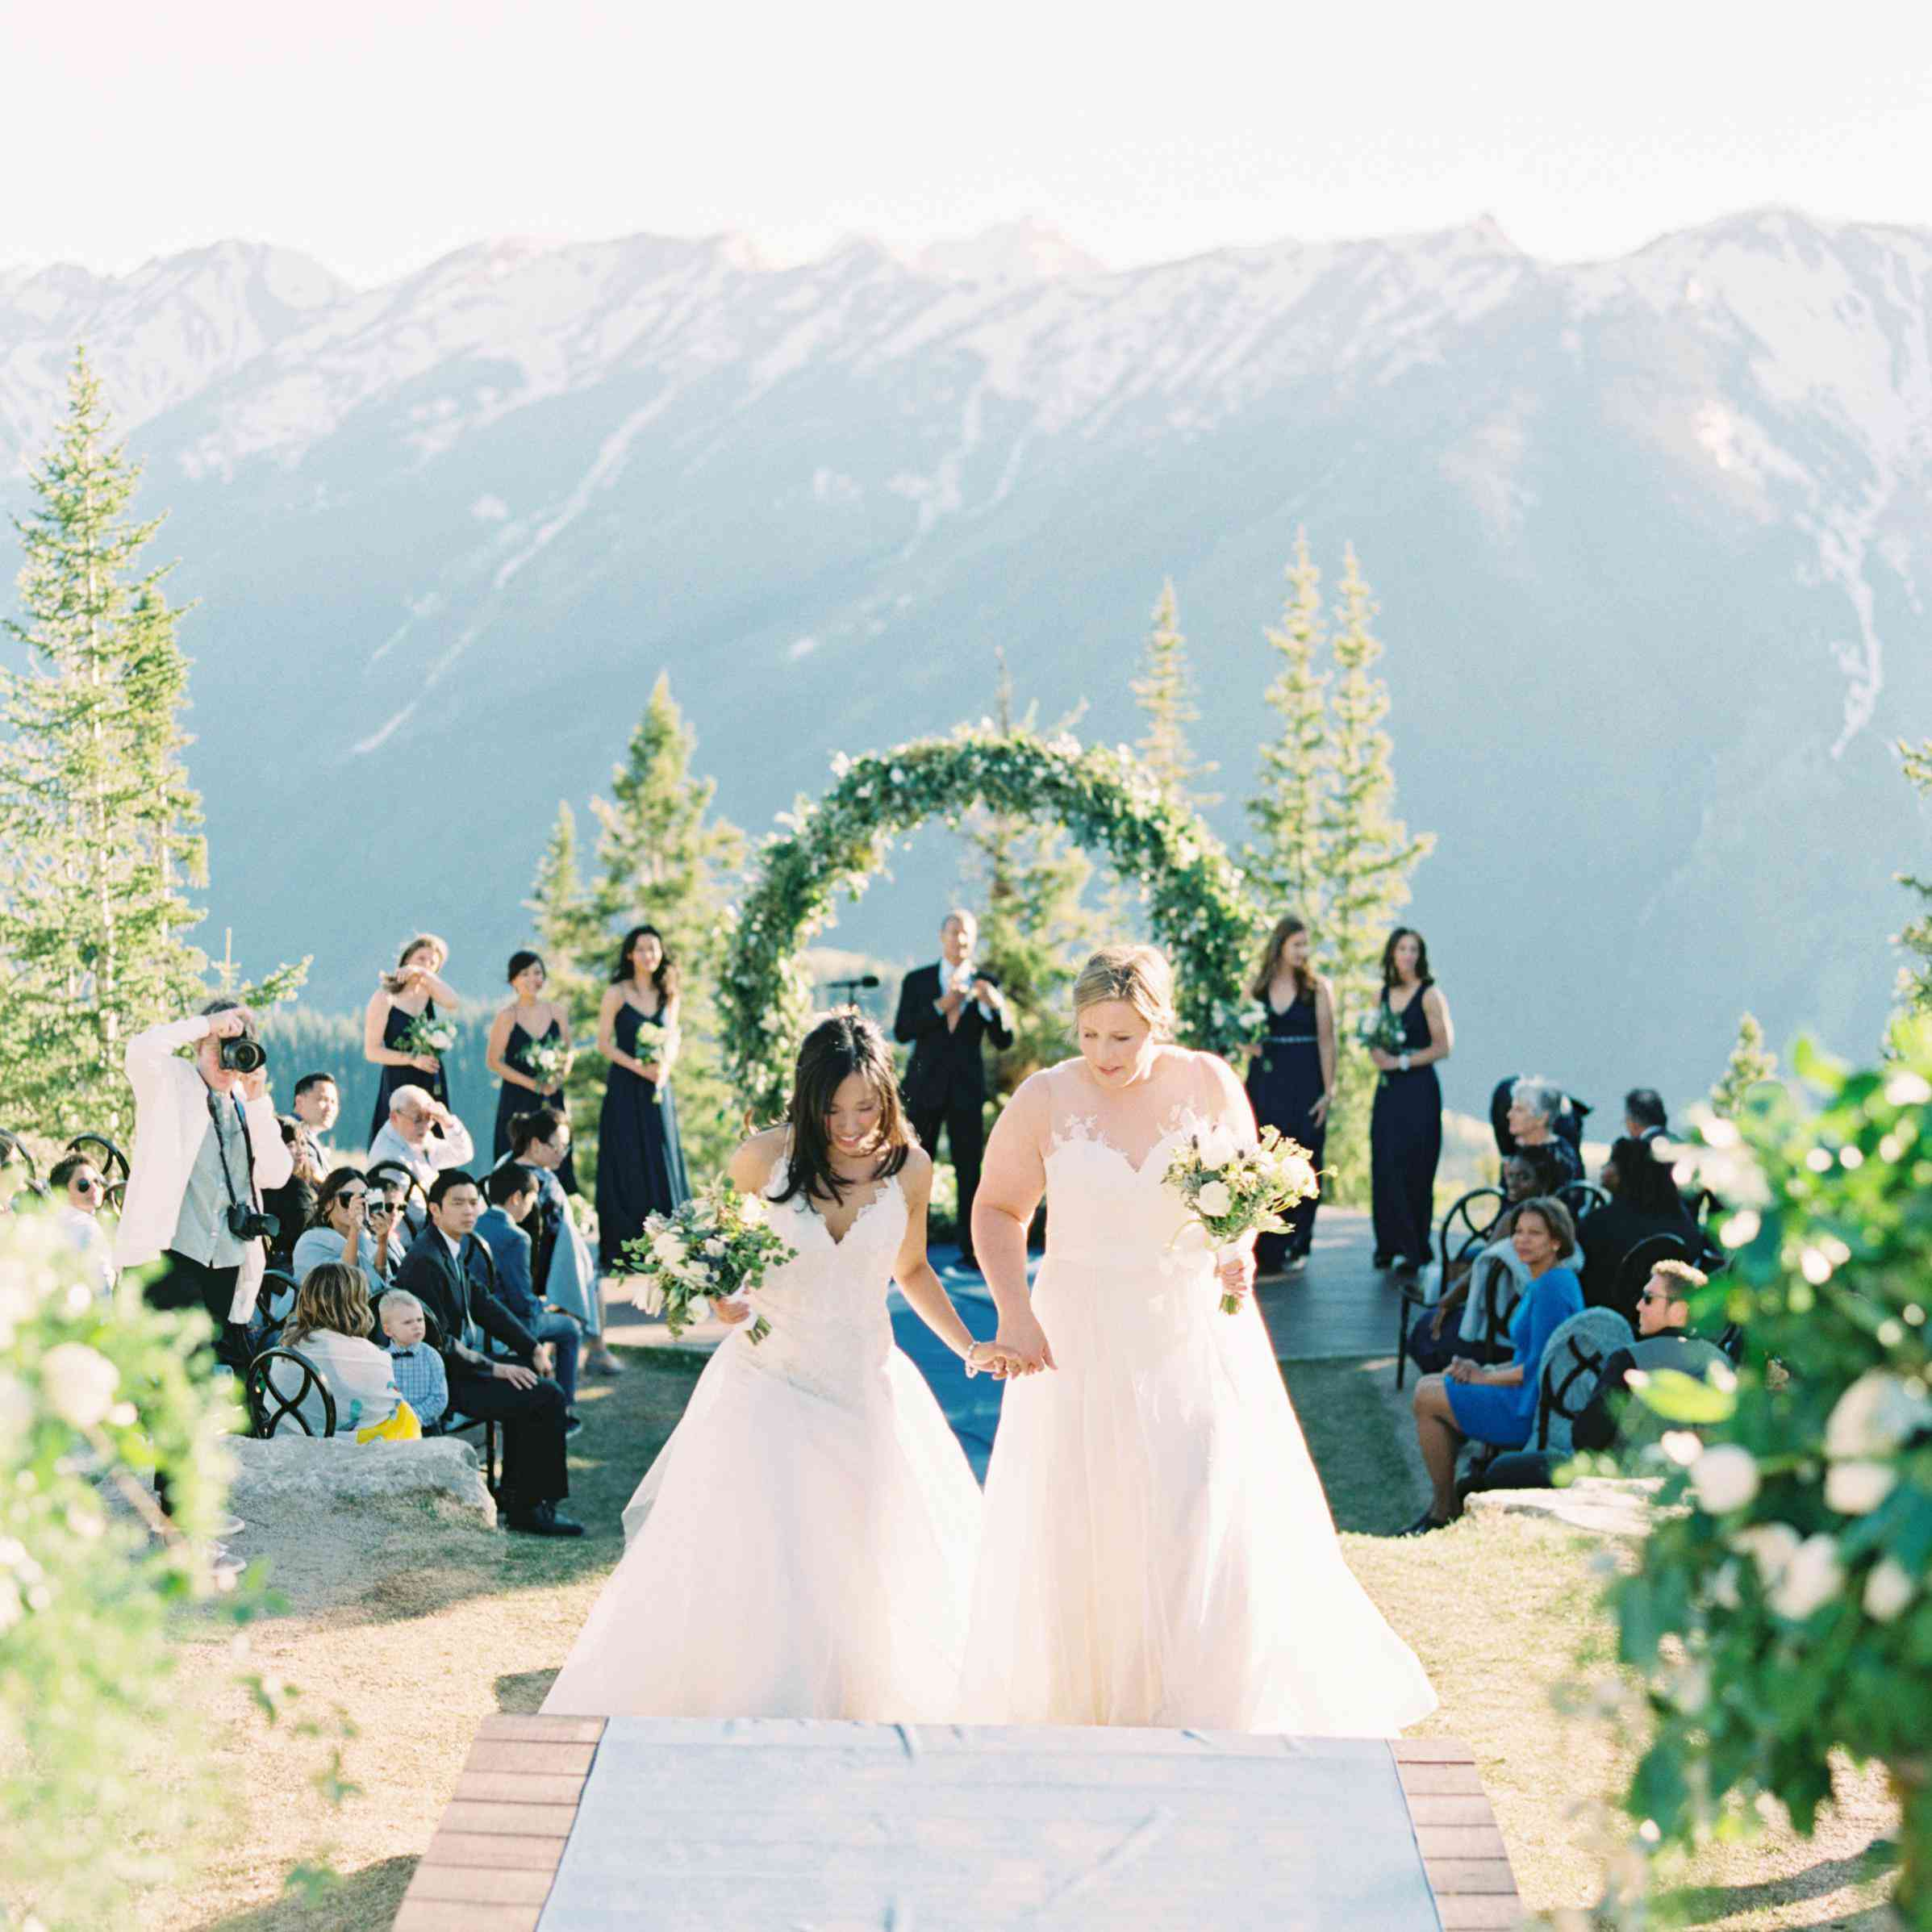 Wedding Ideas Spring: 10 Spring Wedding Themes That Are In Bloom For 2019